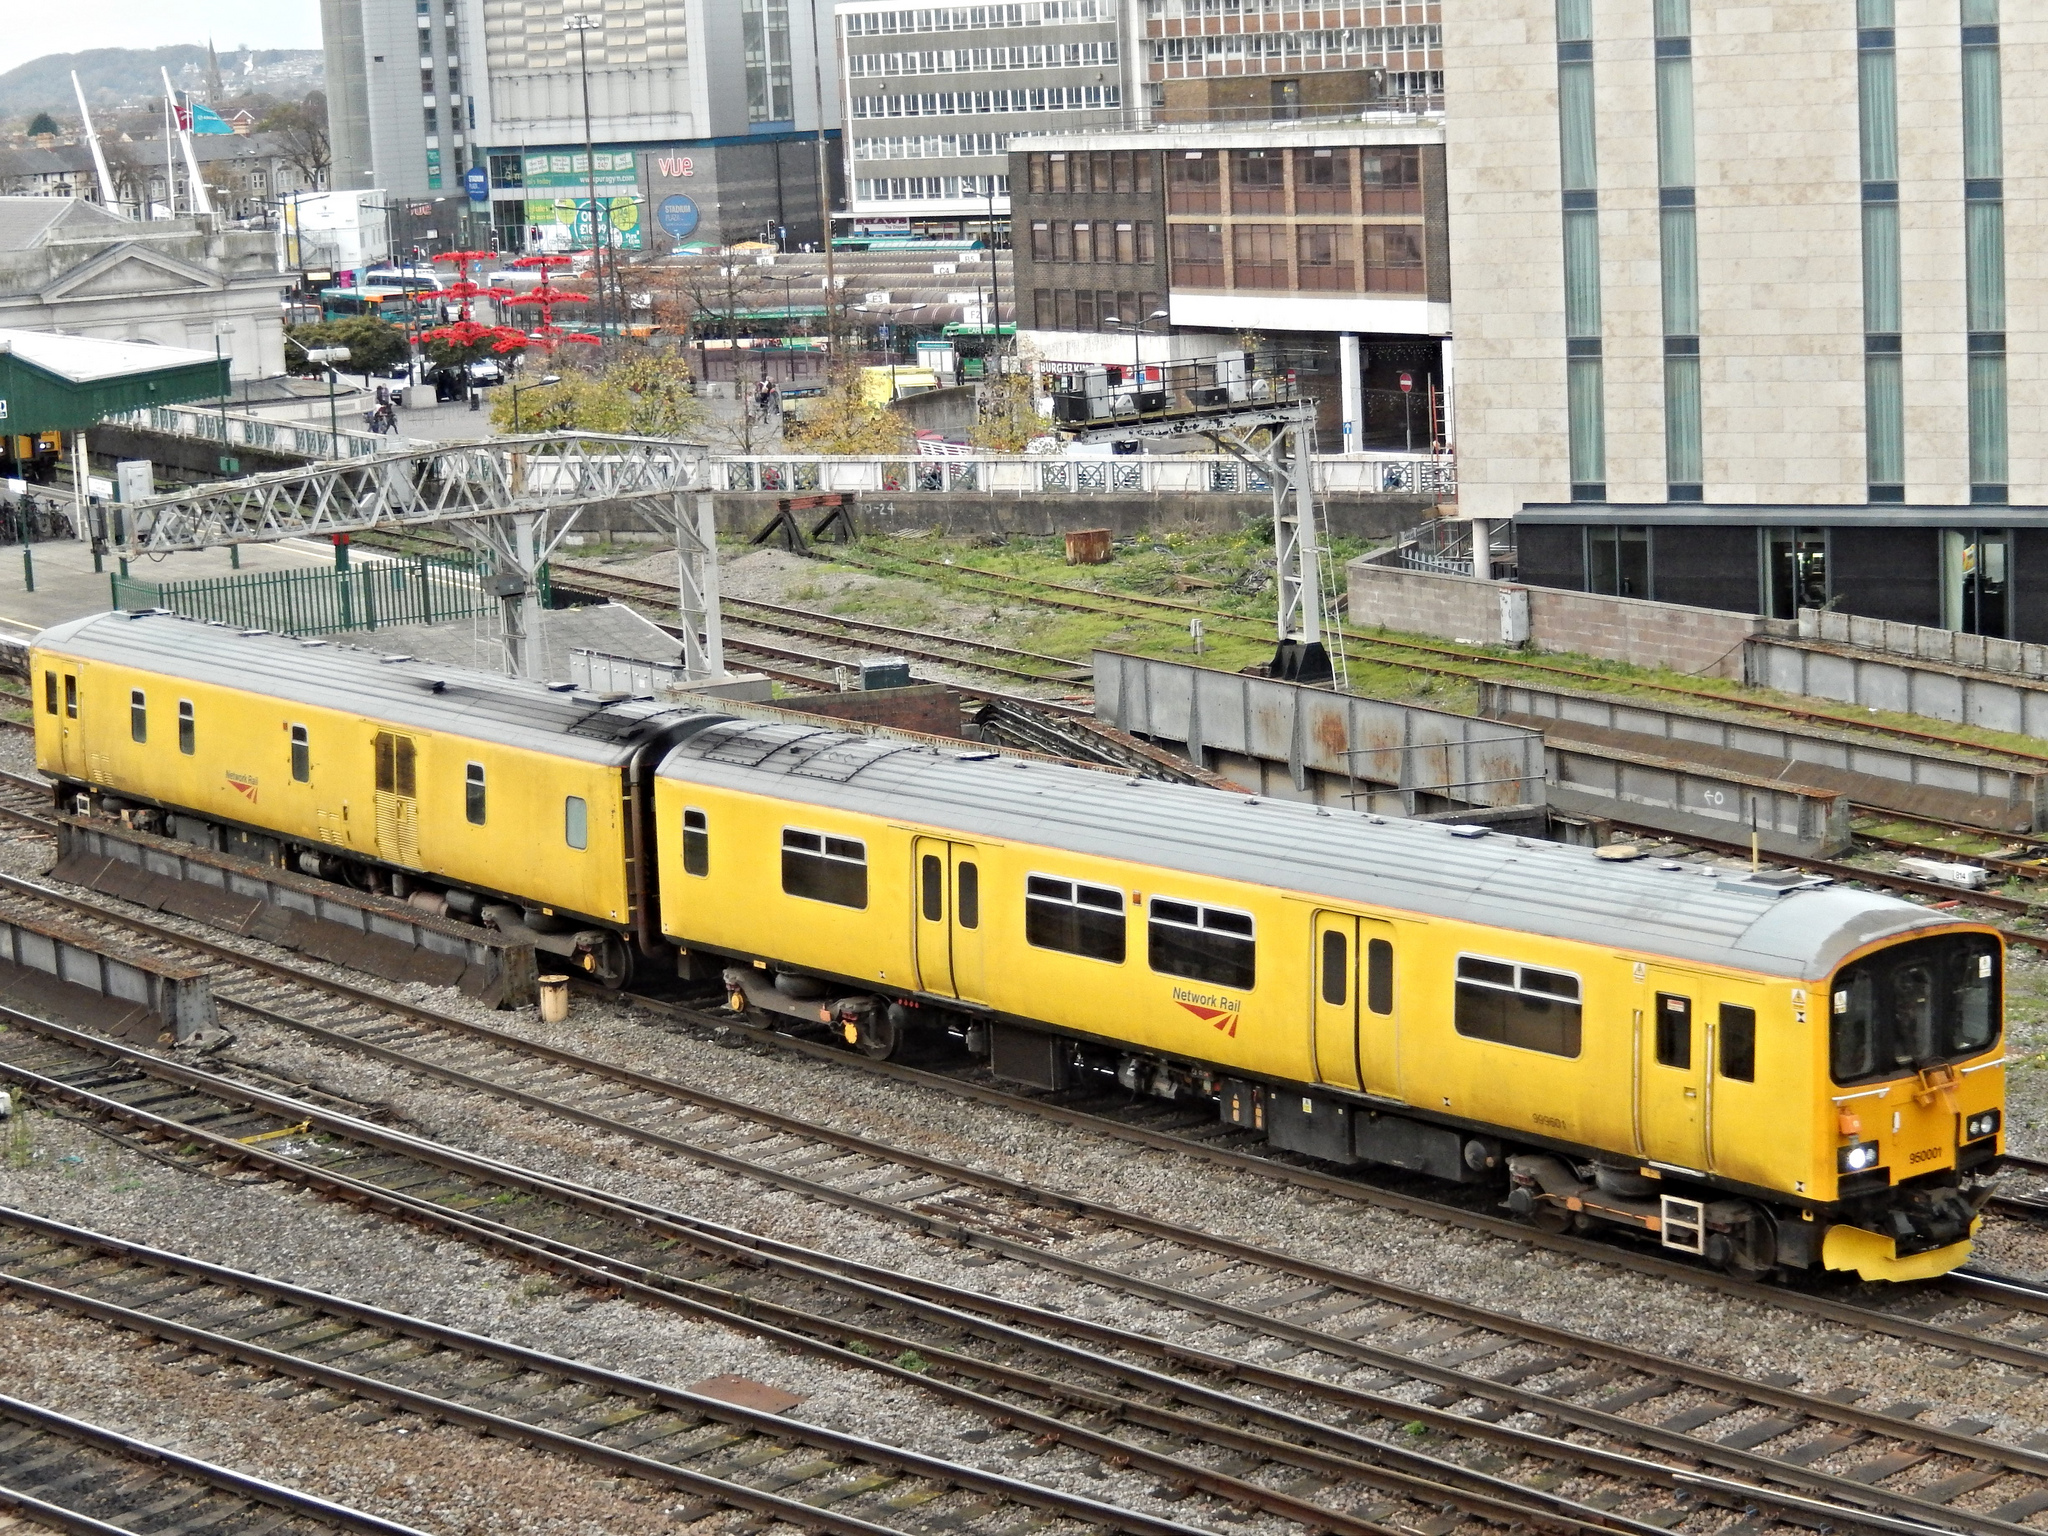 Upgrade Plan from Network Rail